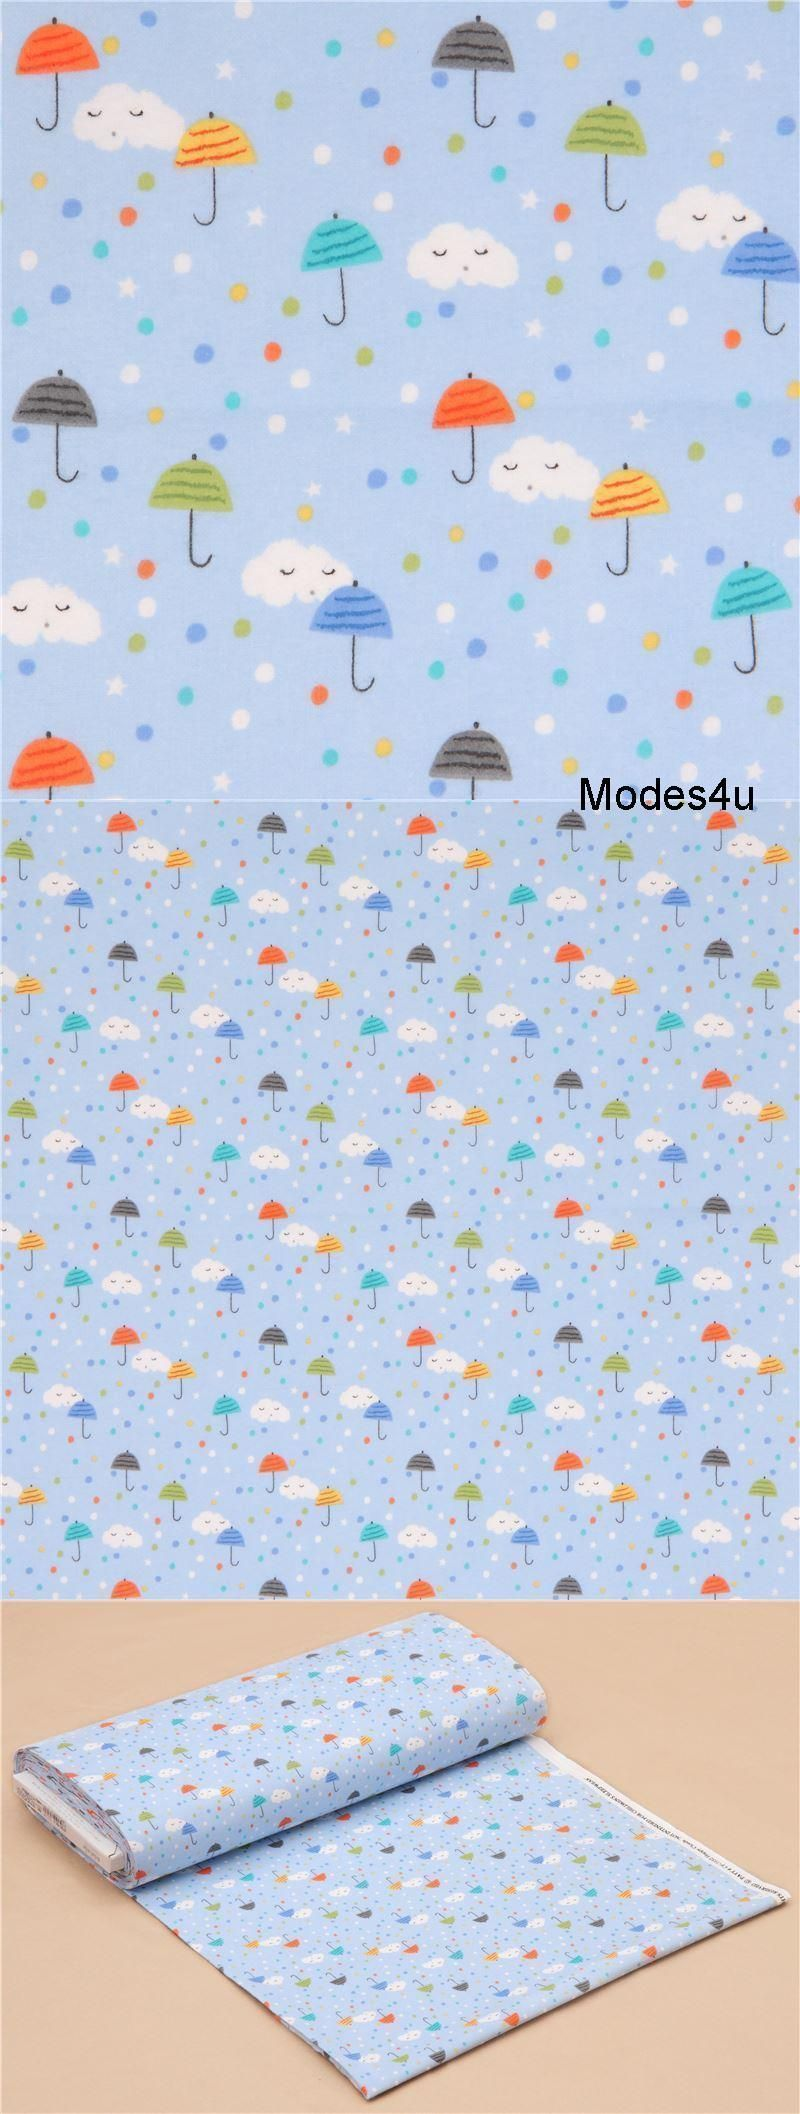 light blue cute umbrella clouds dots Michael Miller flannel fabric from the USA #cuteumbrellas Michael Miller Flannel Fabric by Michael Miller Collection Happy Clouds OnFlannel Import from USA light blue flannel fabric with clouds, stars, colorful umbrellas and spots inwhite, orange etc. very high quality fabric, typical great Michael Miller quality radiant colours, many details and beautiful print 100% cotton soft flannel fabric size of the cloud: ca. 2.5cm (1) pattern repeat: ca. 15.8cm #cuteumbrellas